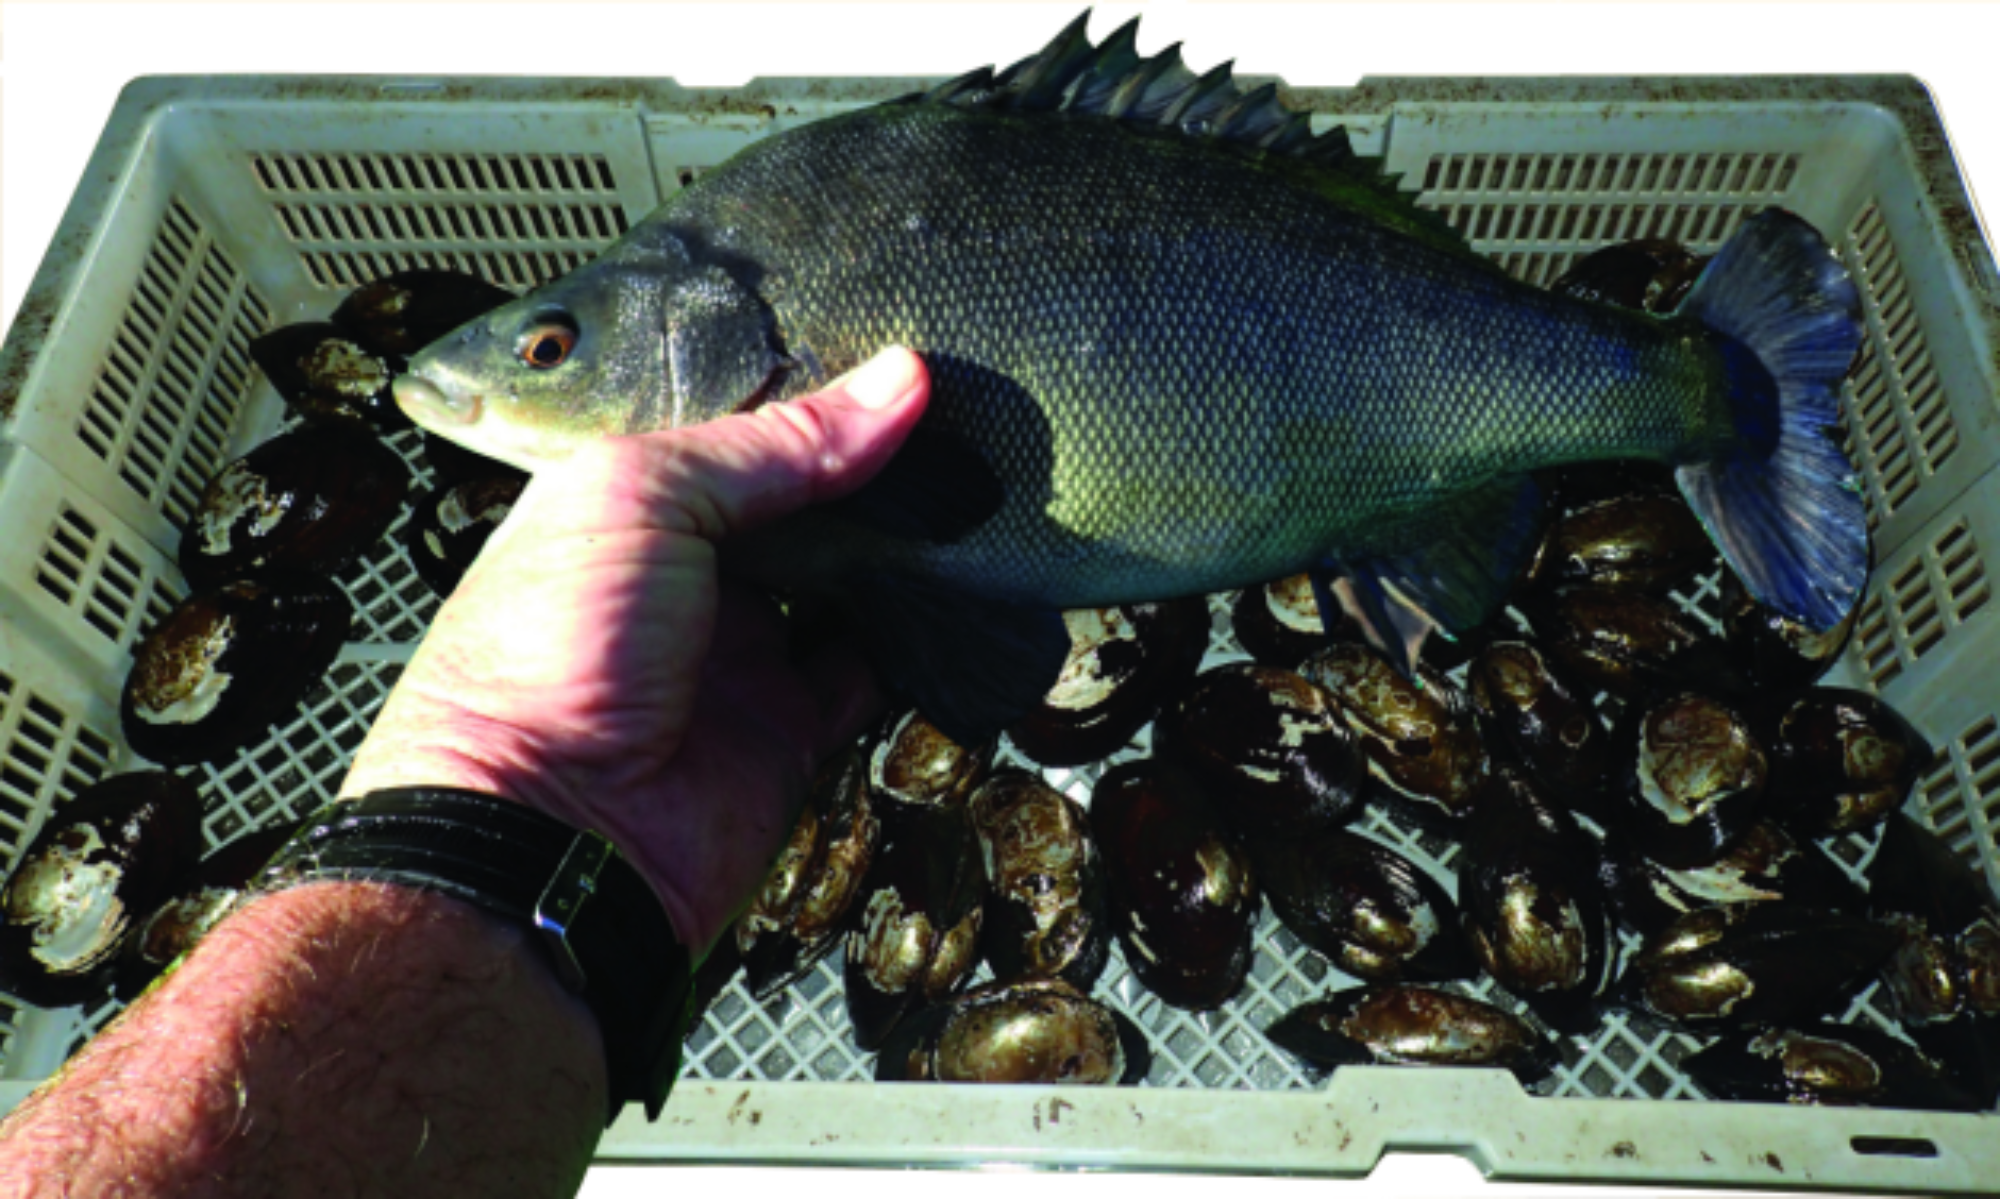 Silver Perch and Mussel Hatchery